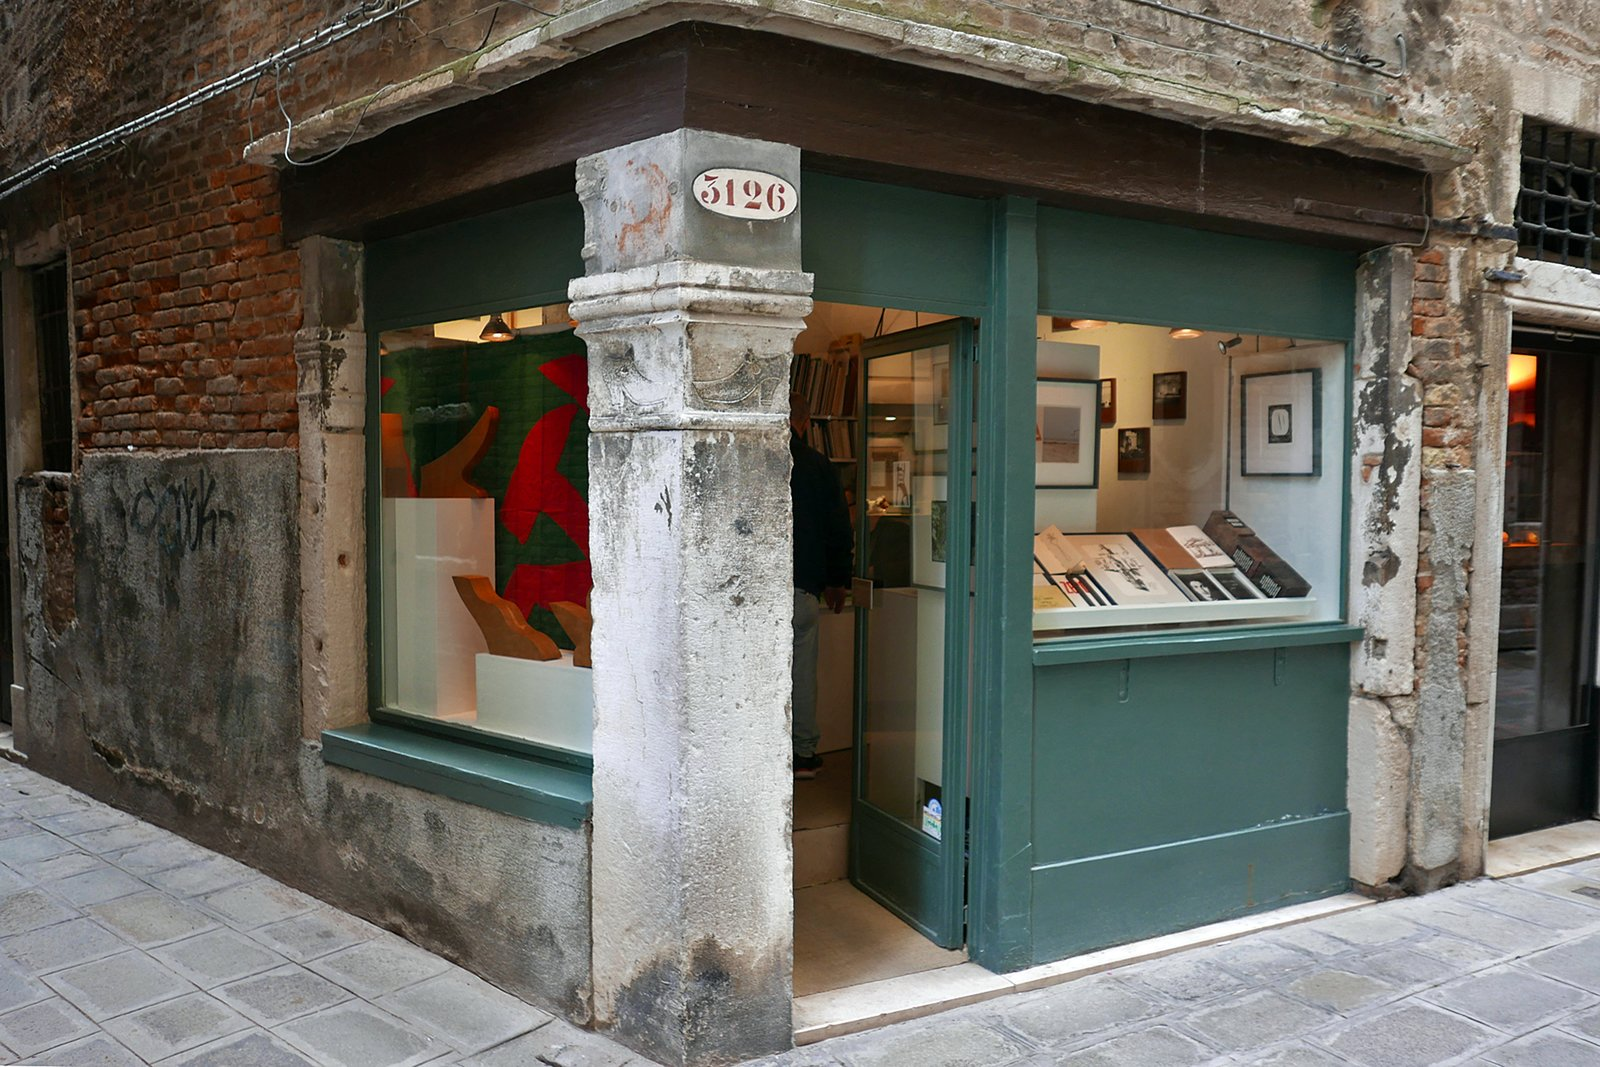 The Giorgio Mastinu Gallery oin San Marco recently exhibited The Campi, a project by artist Melissa McGill.  Photo 9 of 13 in A Locals' Guide to Venice During the 2017 Biennale